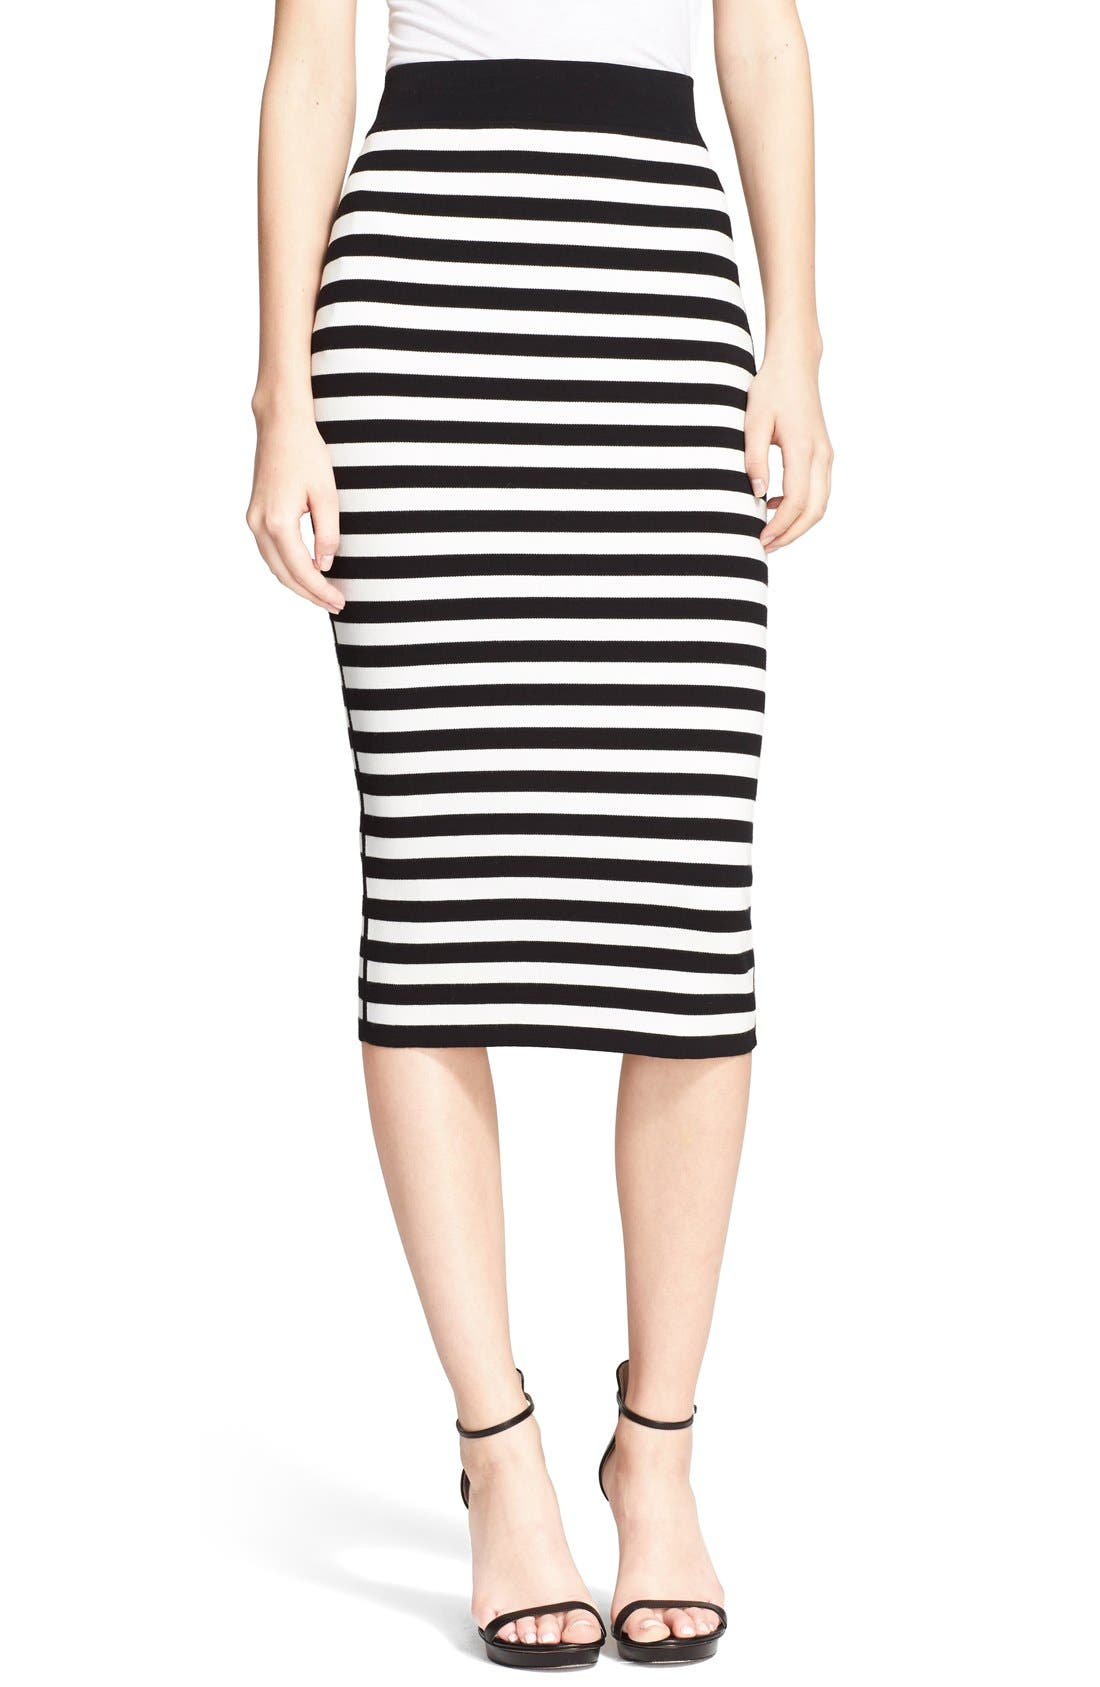 Main Image - Michael Kors Stripe Knit Pencil Skirt